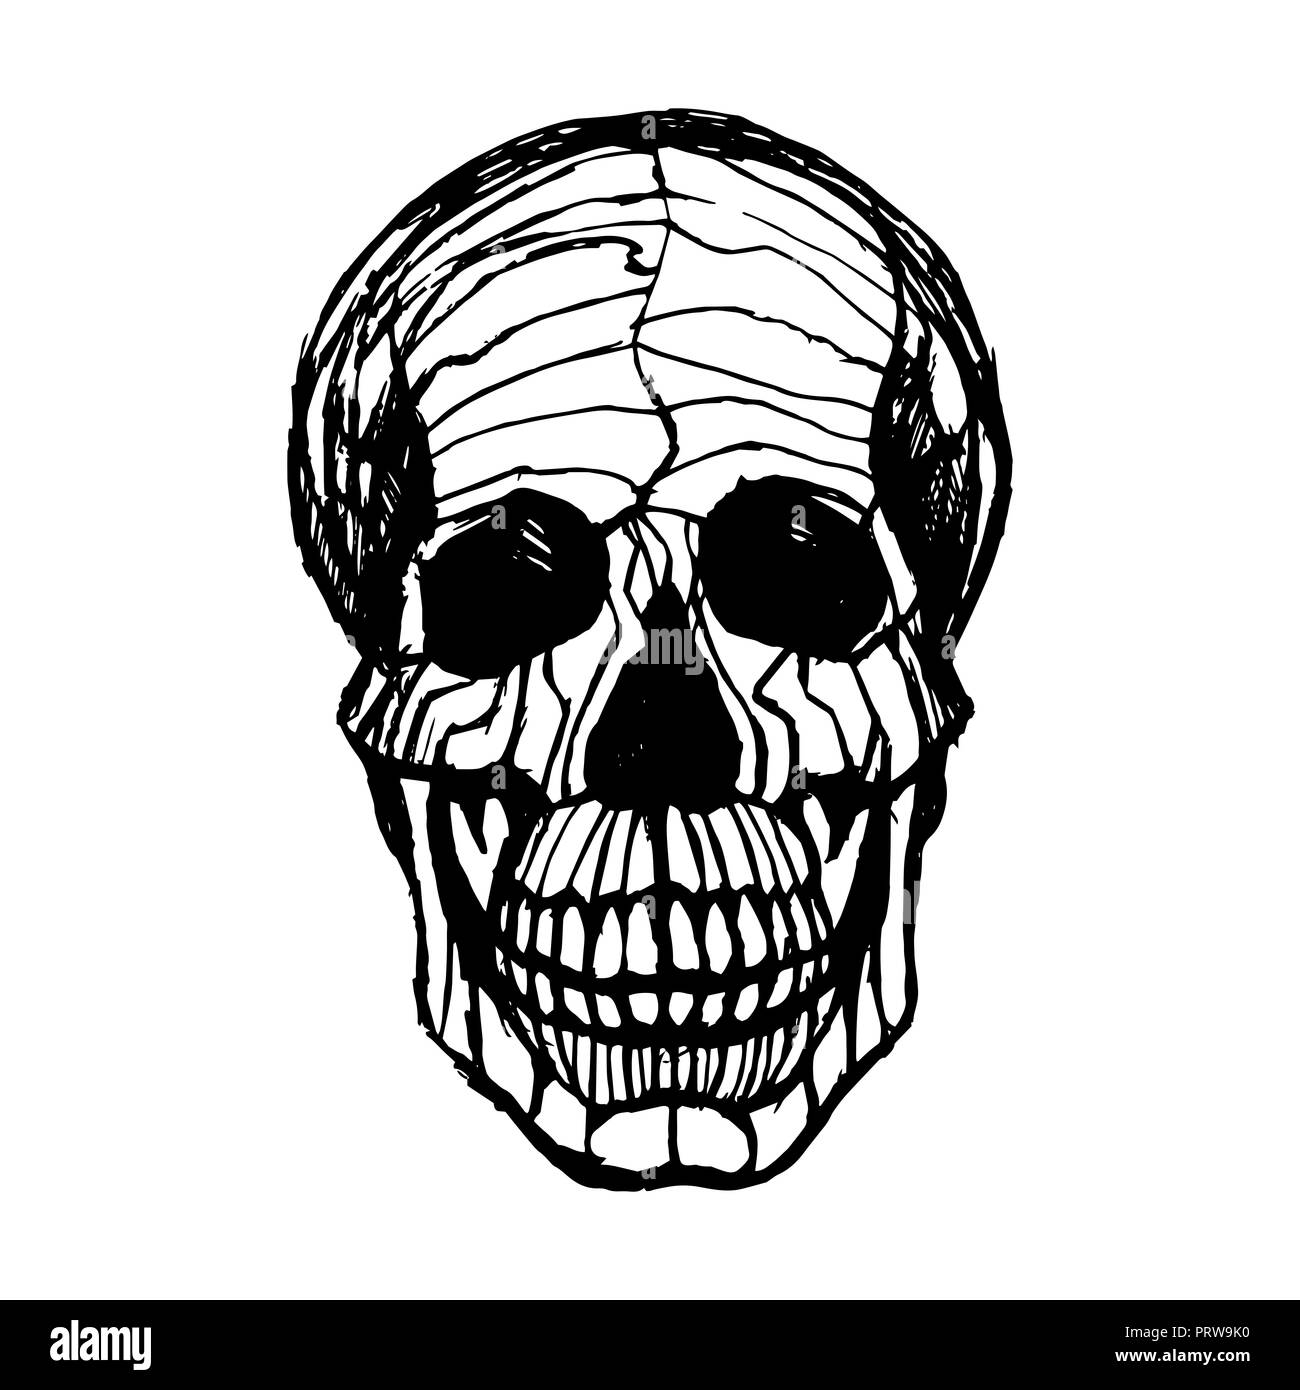 black and white illustration of human skull with a lower jaw in ink hand drawn style. Stock Photo